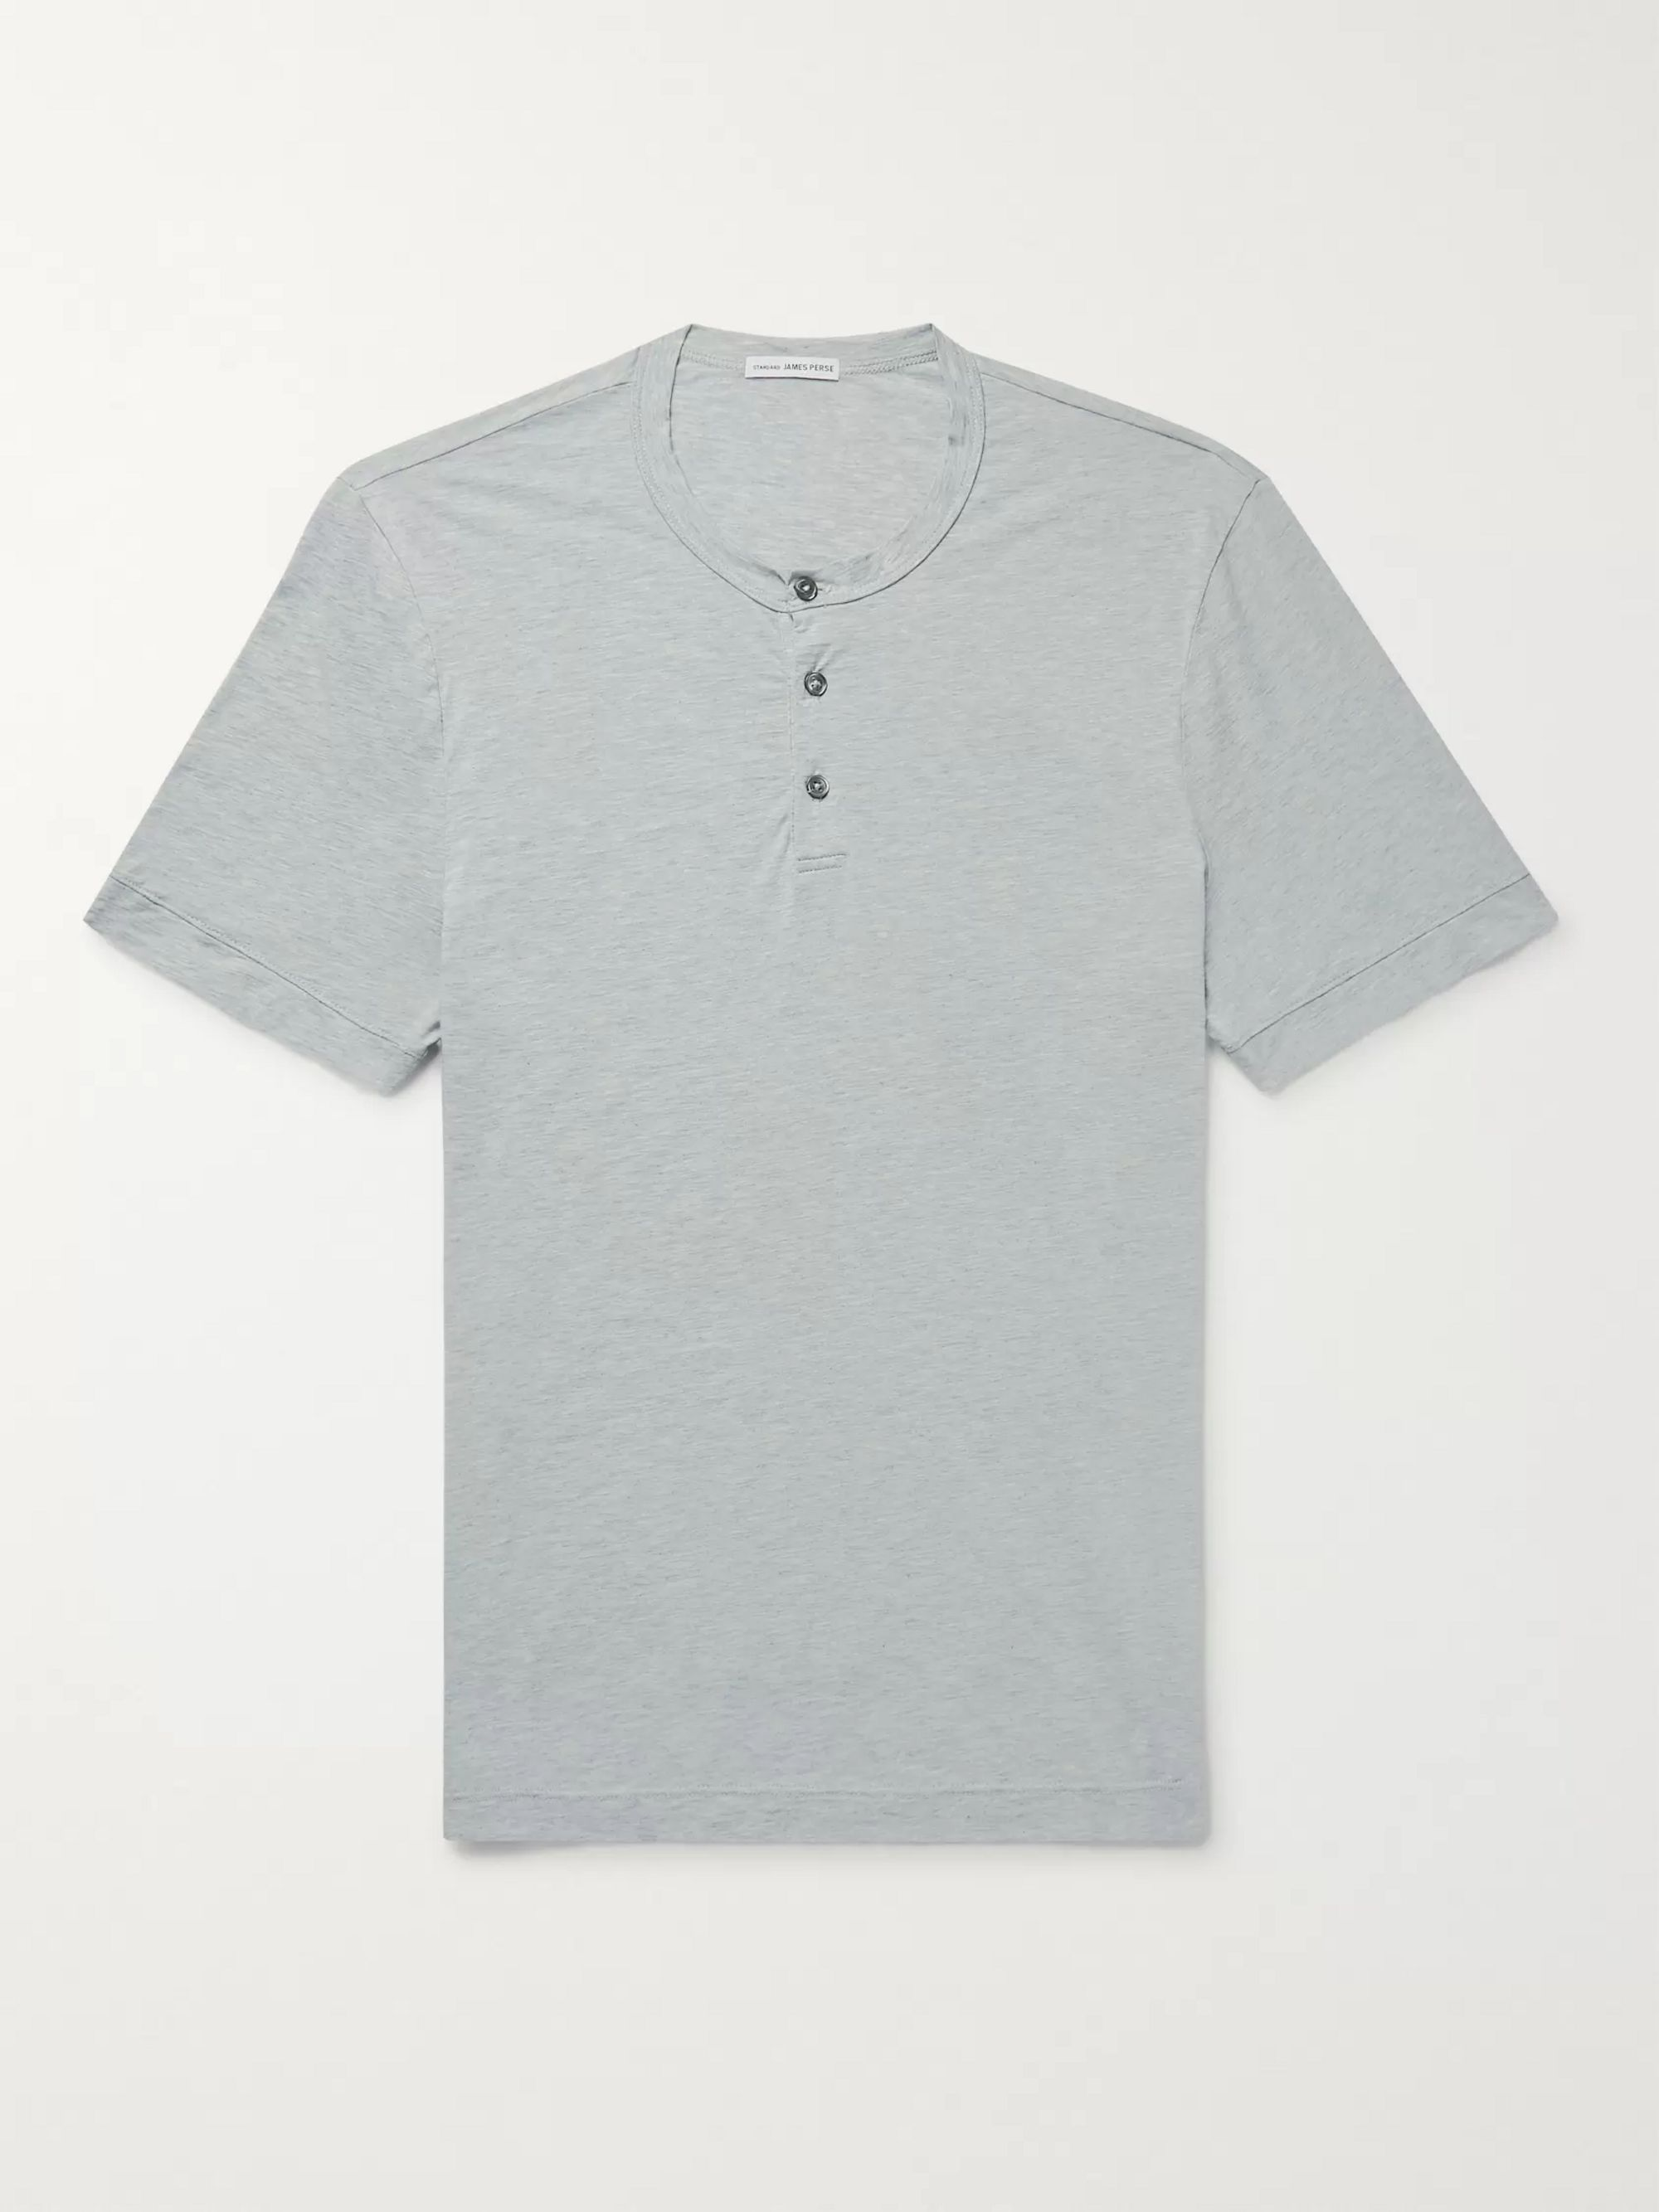 James Perse Mélange Cotton and Cashmere-Blend Henley T-Shirt